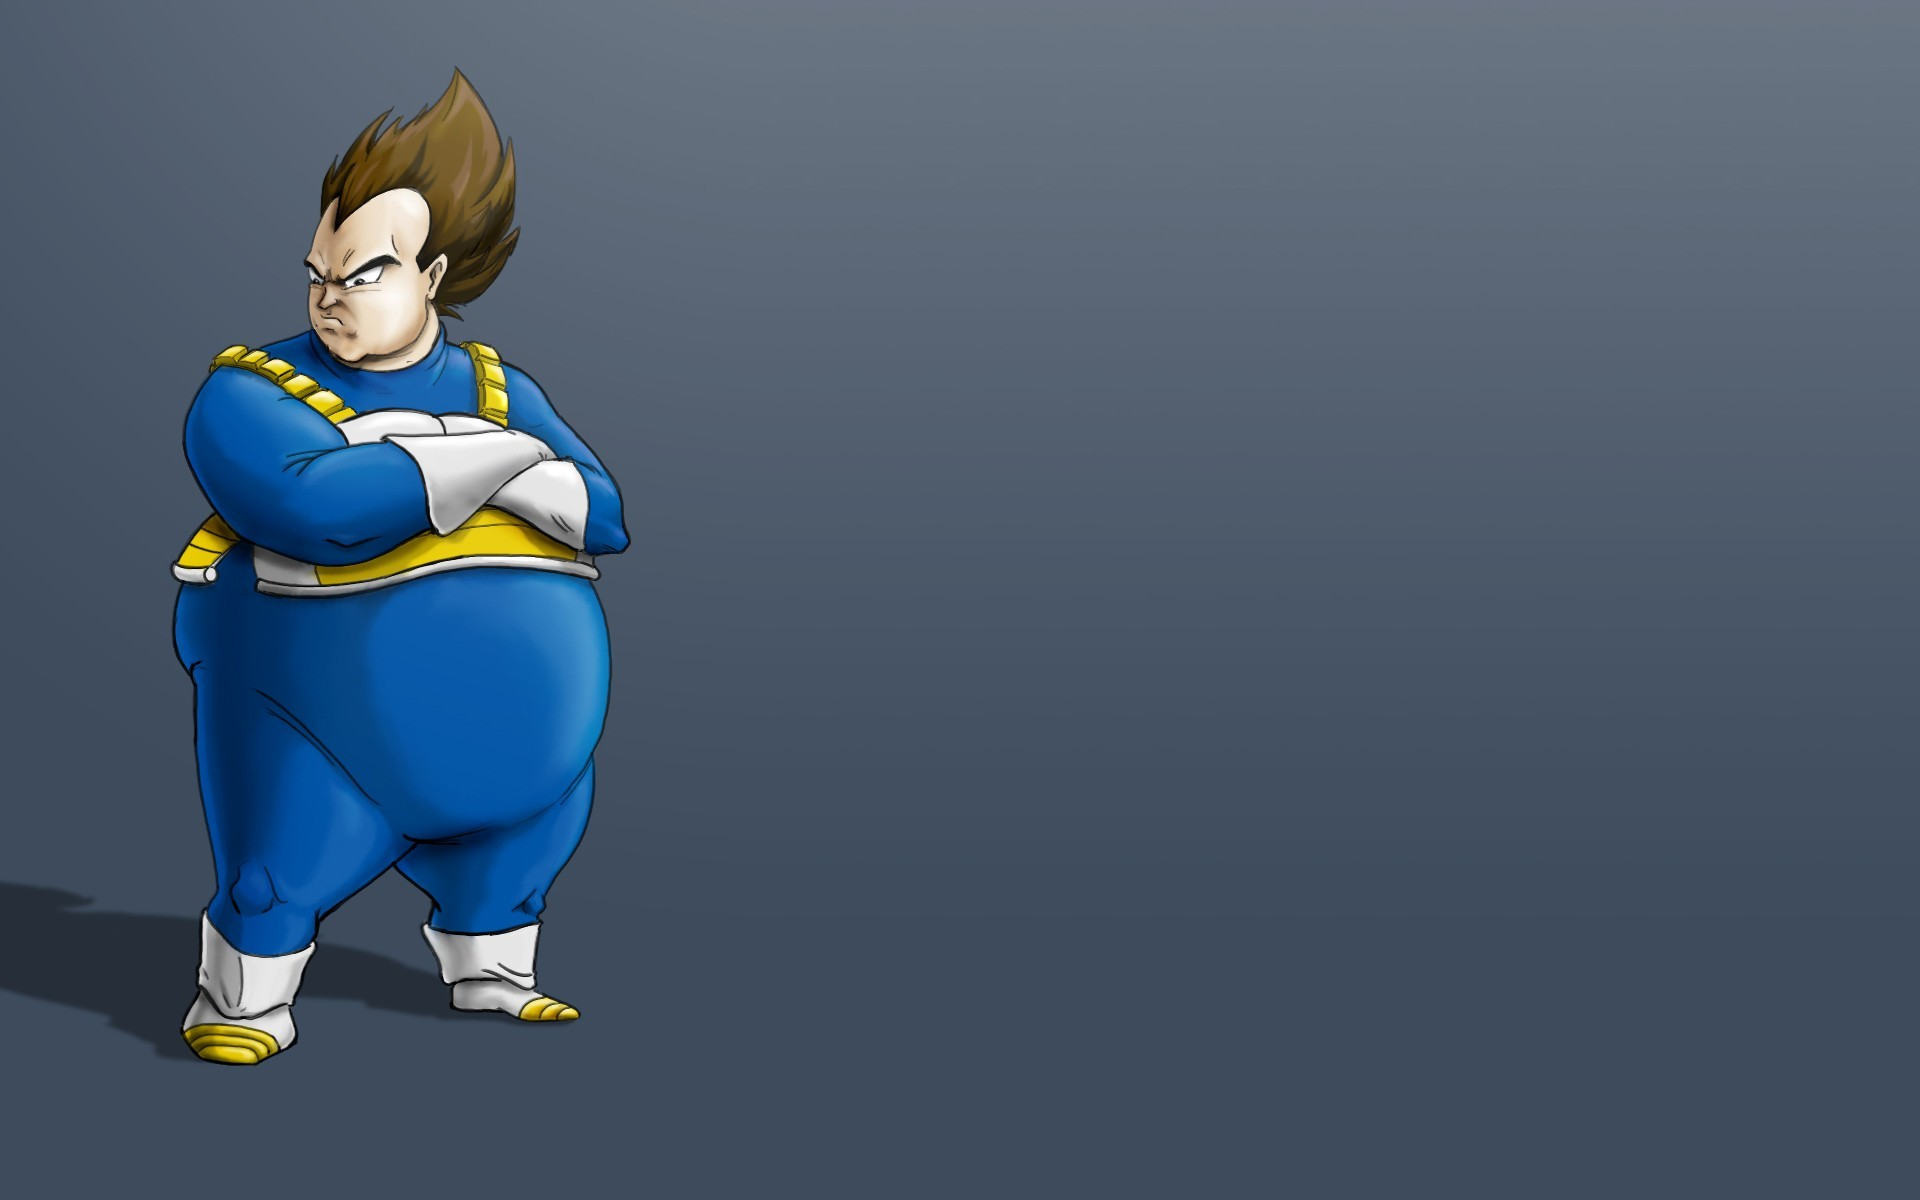 vegeta wallpaper | 1920x1200 | #46916